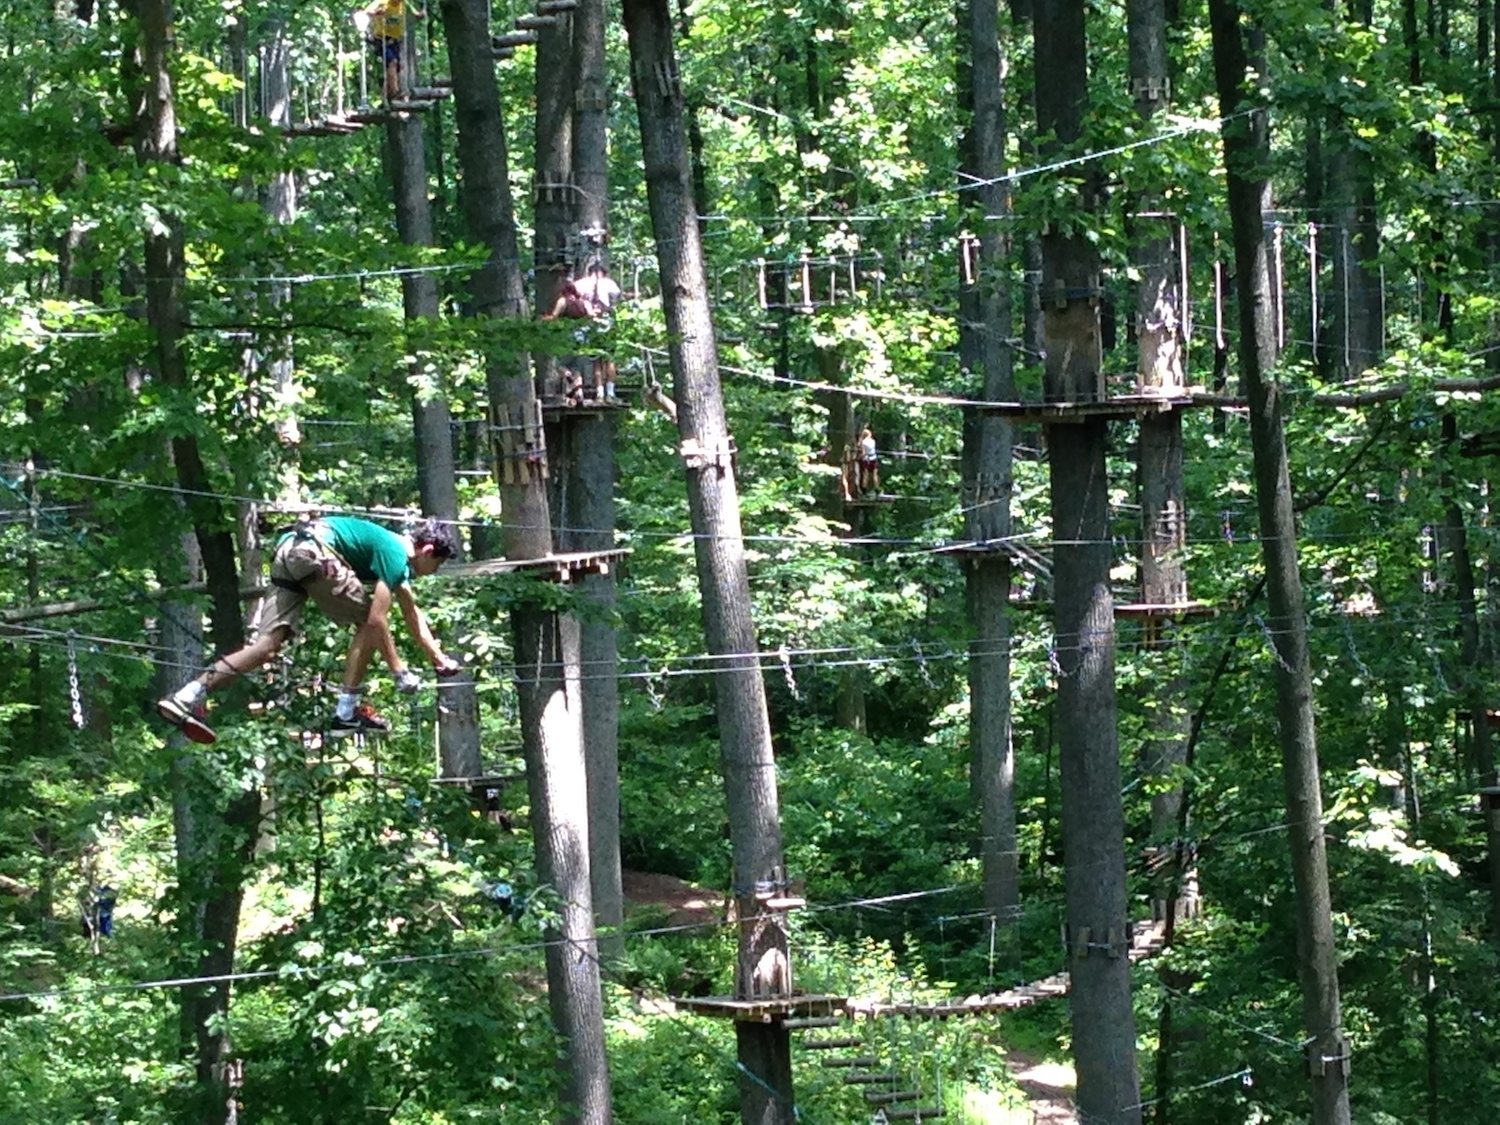 Terror Filled Fun In The Trees At Adventure Park Angelina M Lopez